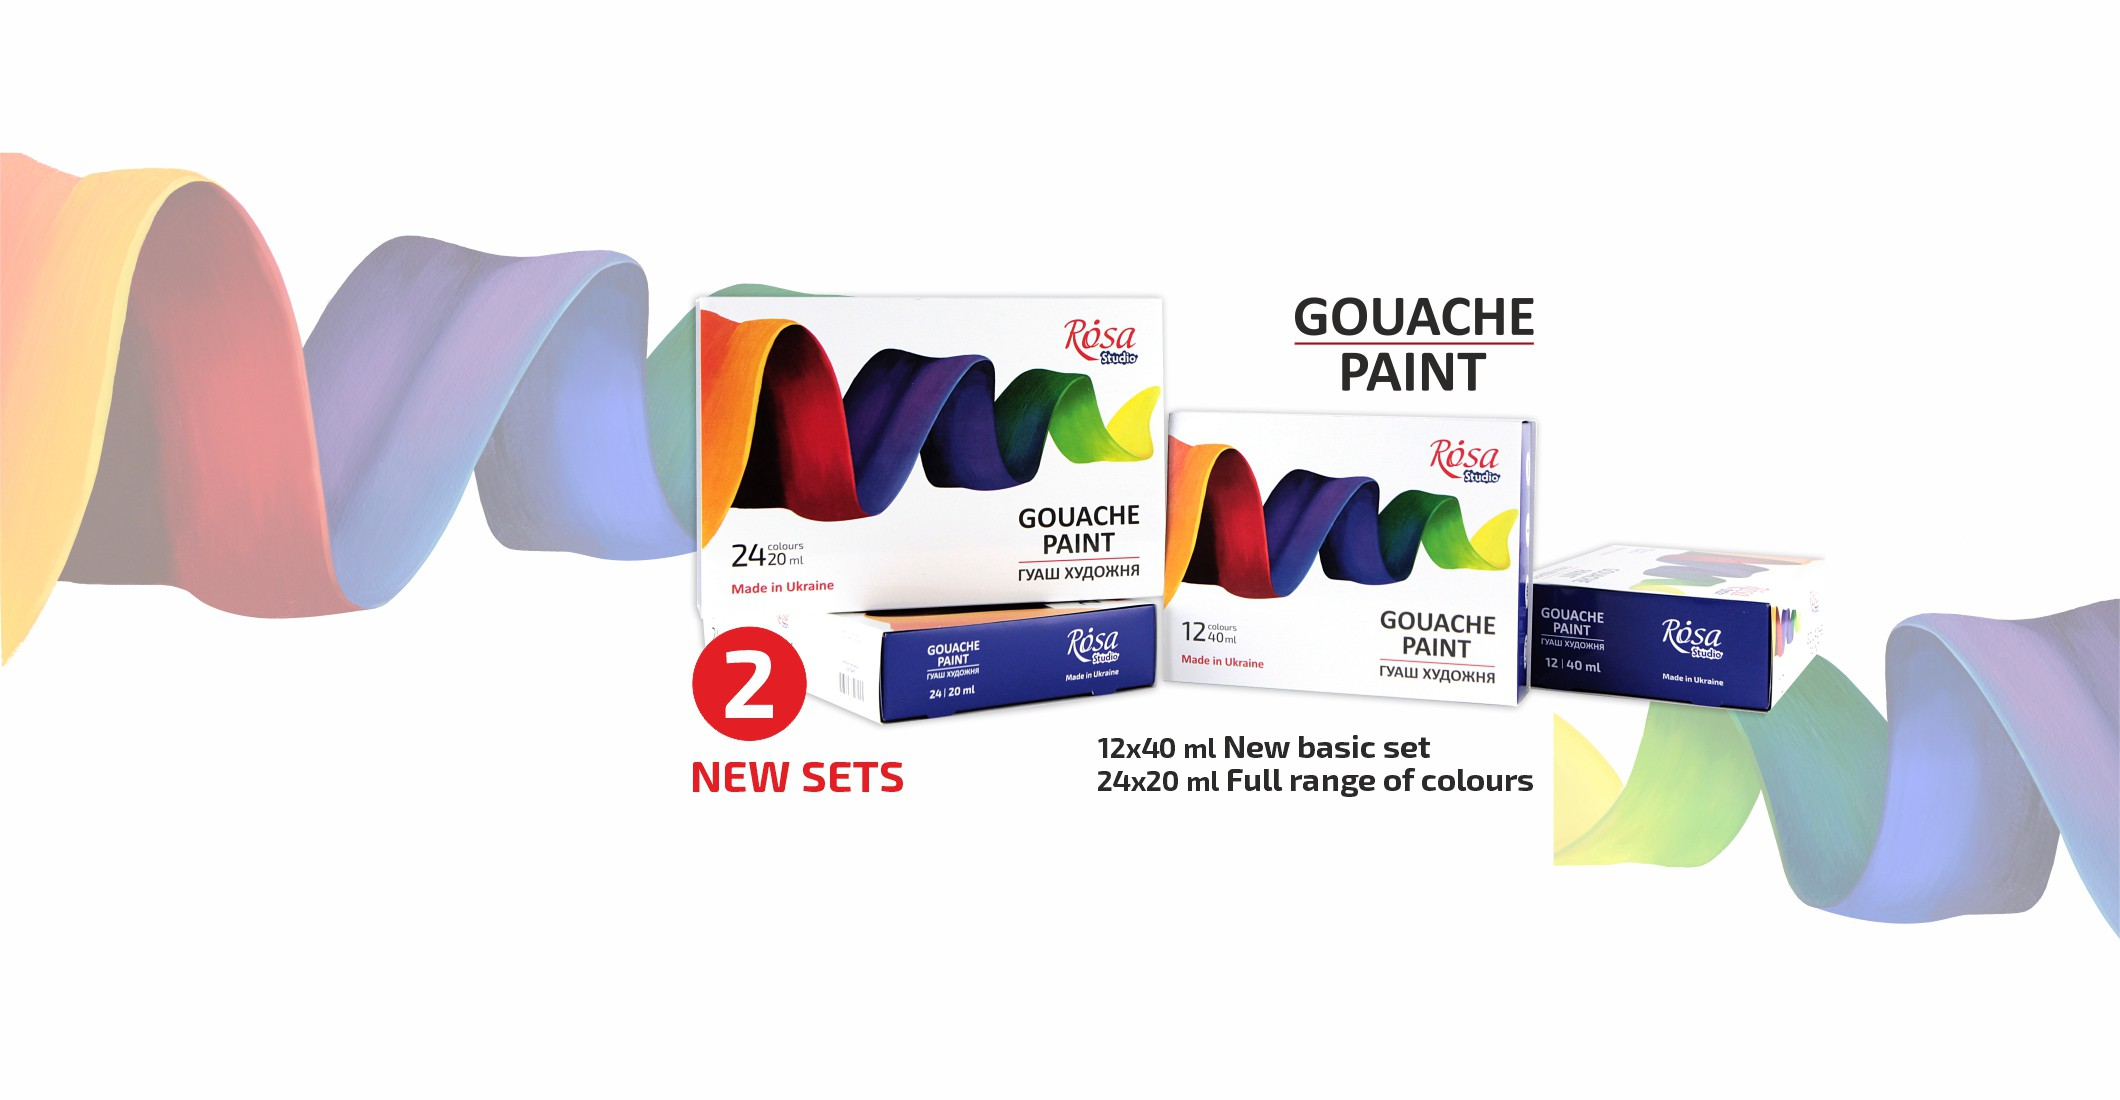 Gouache paint set ROSA Studio